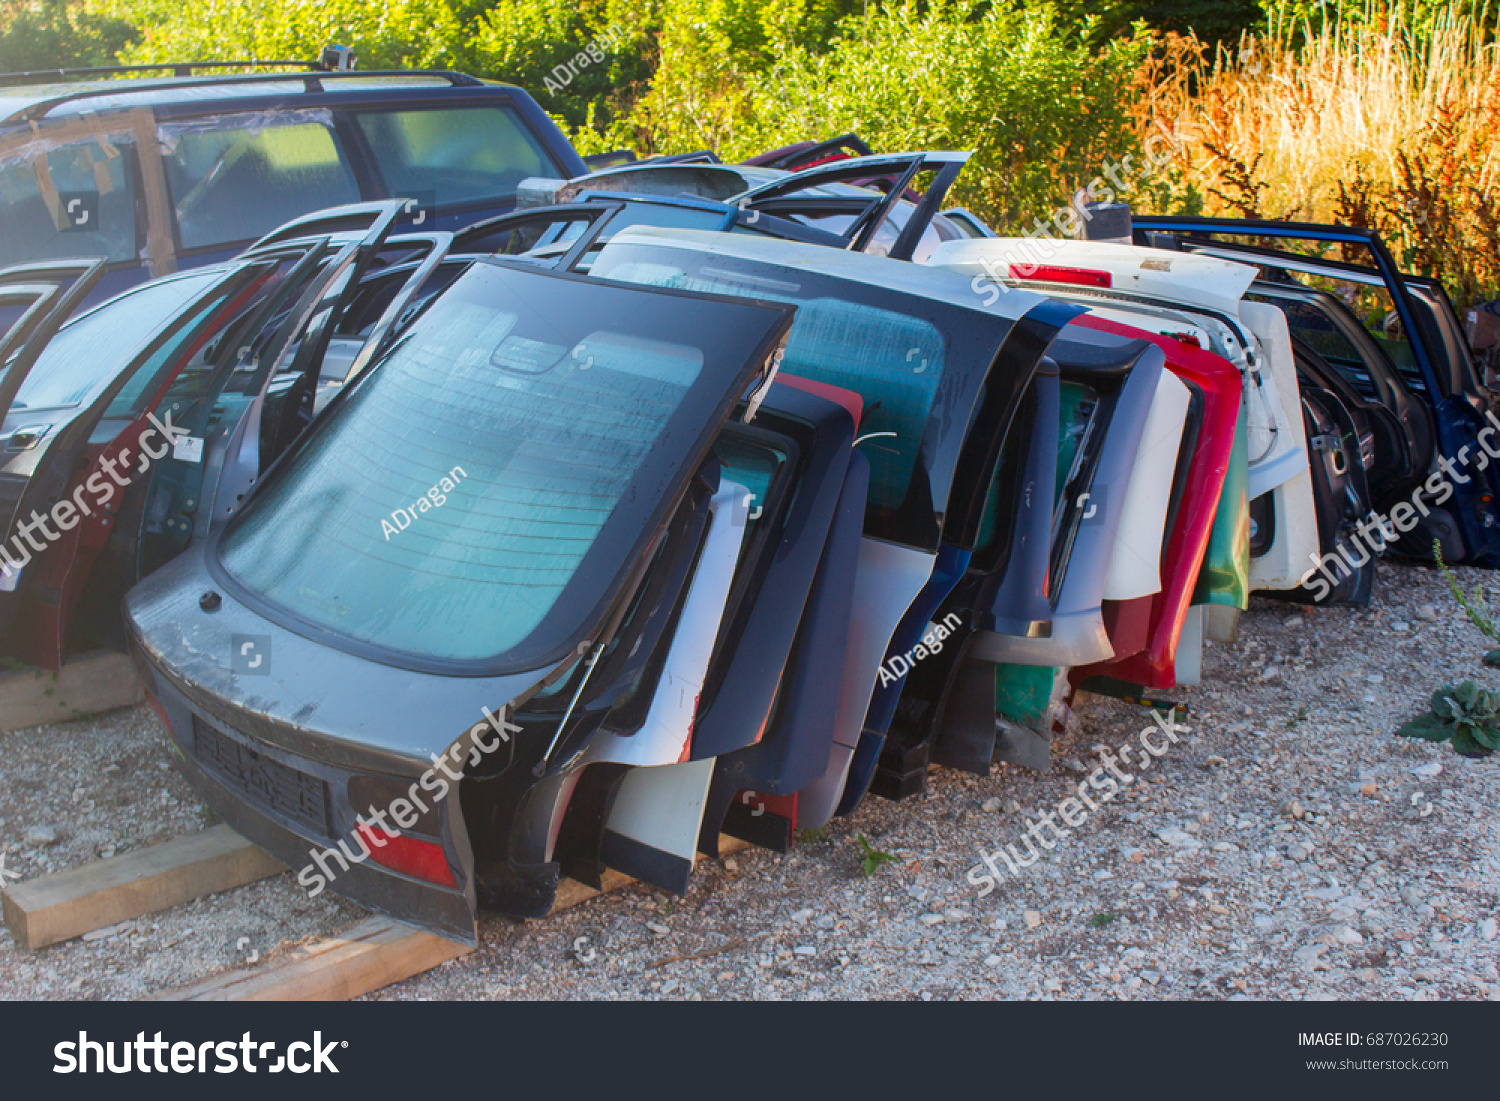 Automobile Parts Old Dismantled Cars Old Stock Photo 687026230 ...